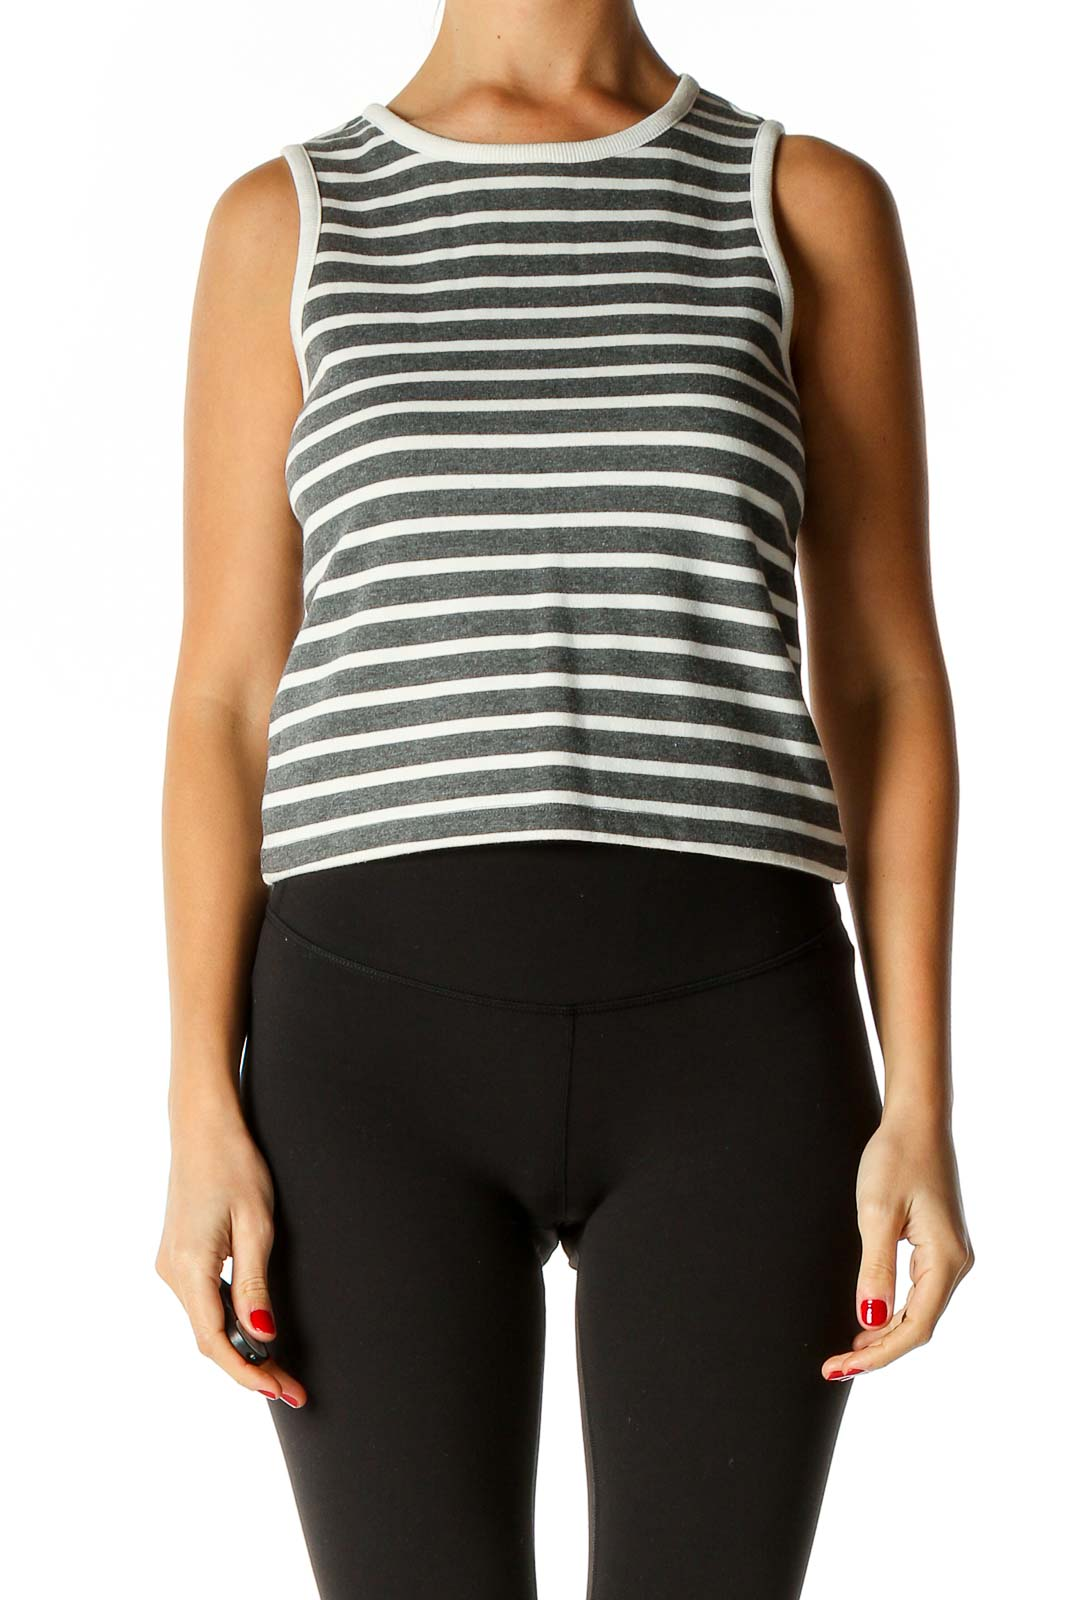 Gray Striped All Day Wear Tank Top Front